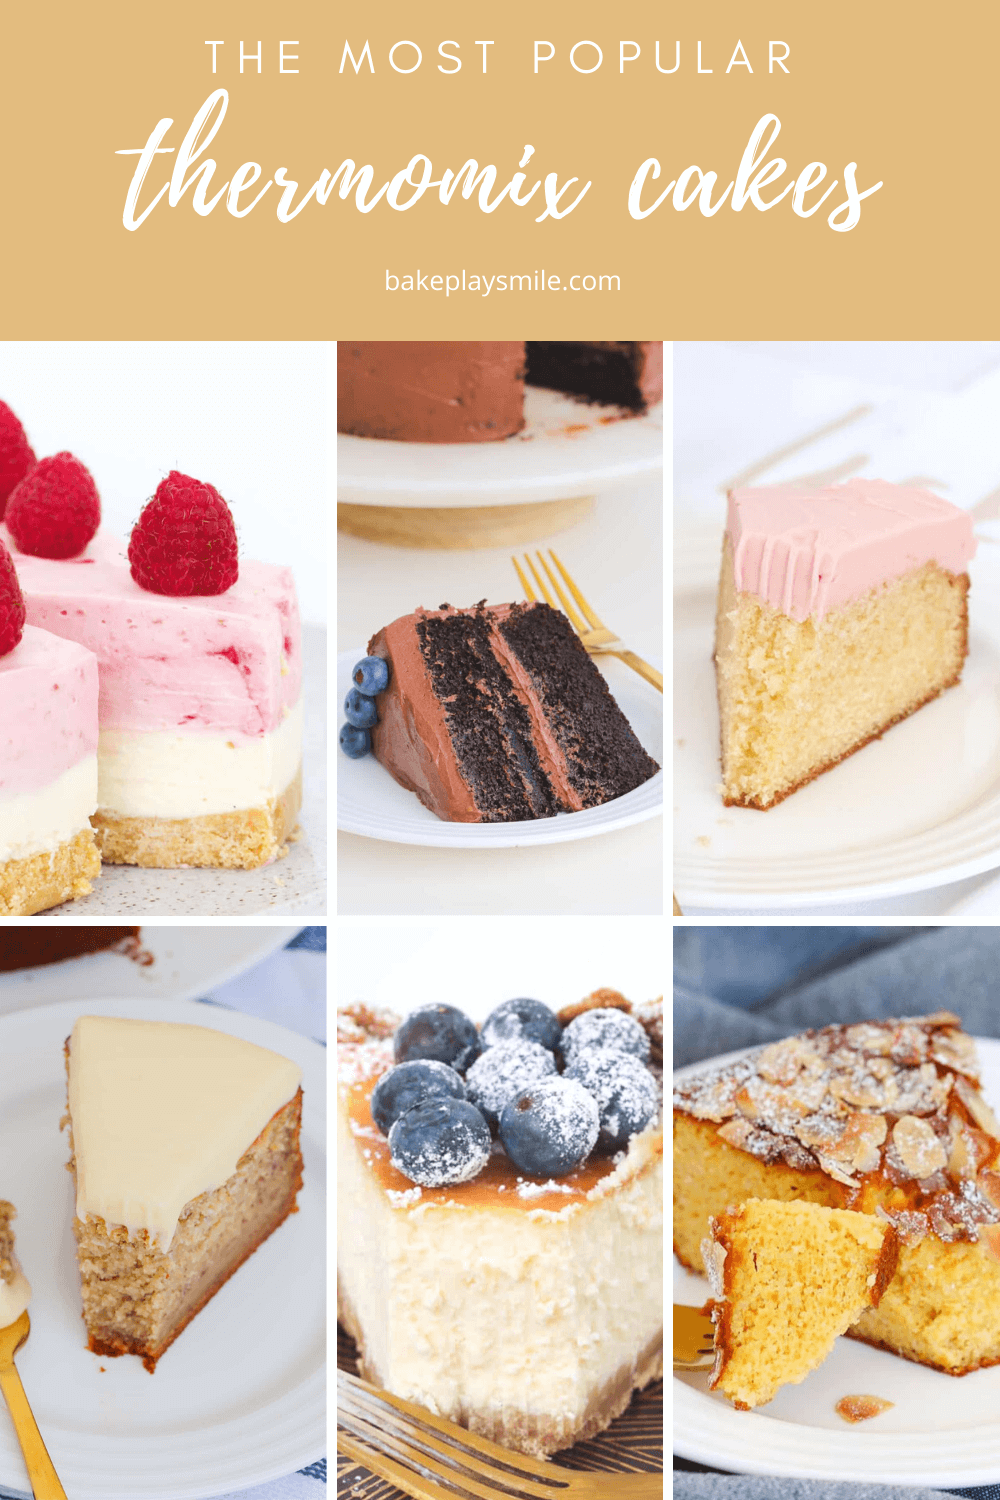 A collage of cakes made in a Thermomix kitchen machine.